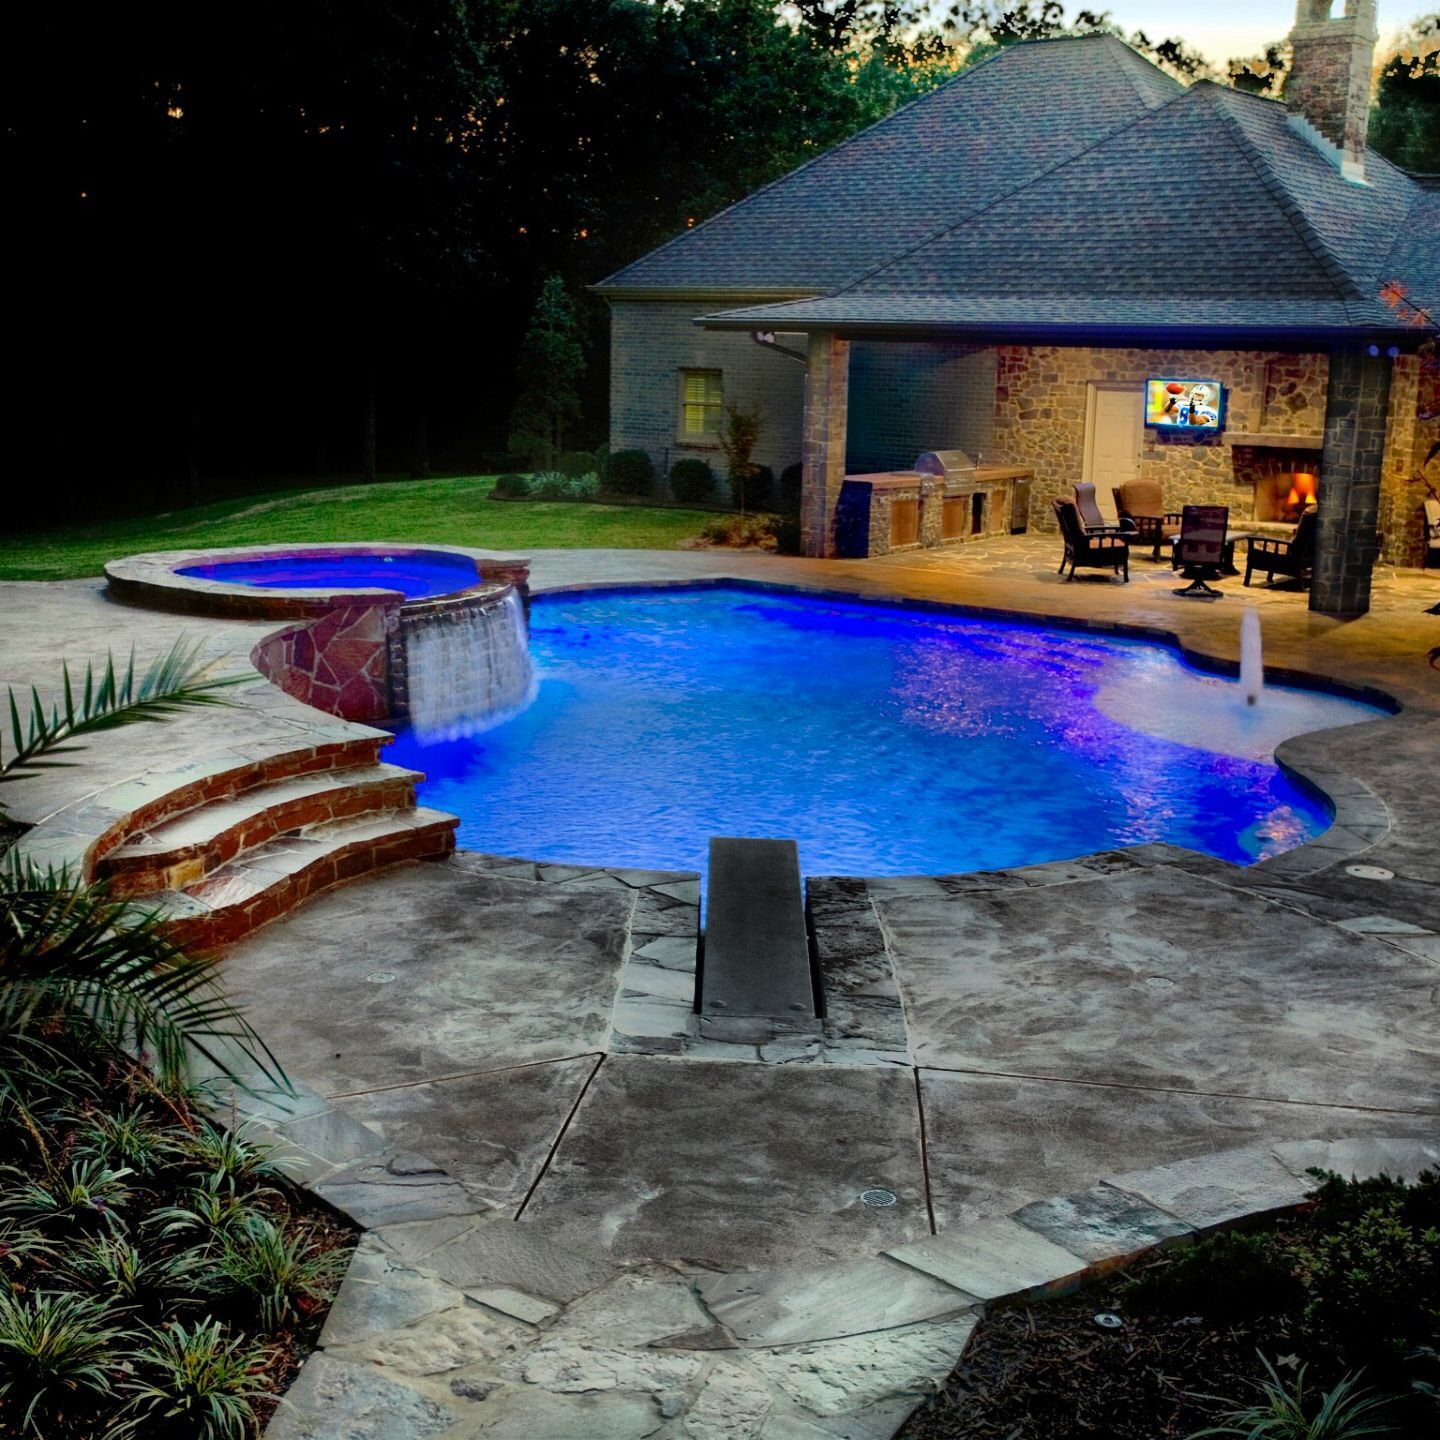 Paradise Outdoor Kitchens For Entertaining Guests With Images Outdoor Outdoor Spa